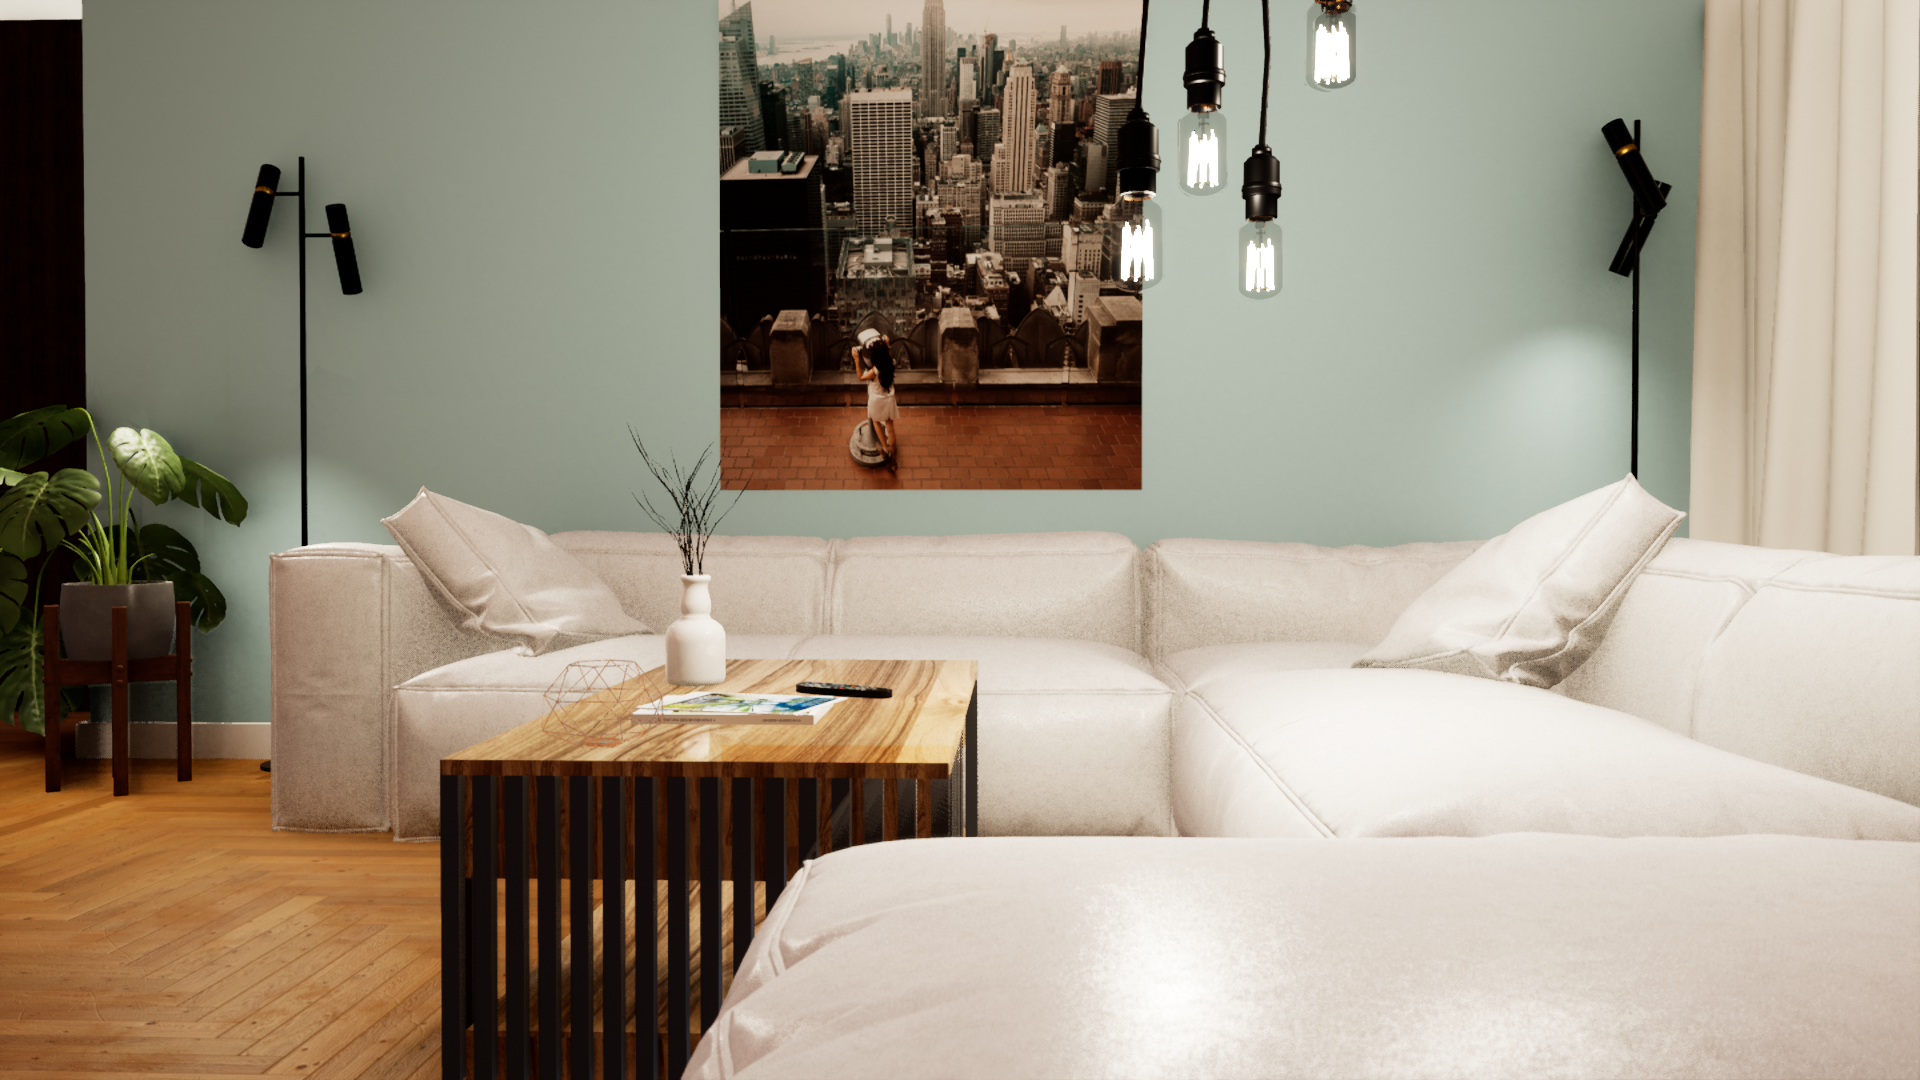 live_instant_render_interior_view_11.png